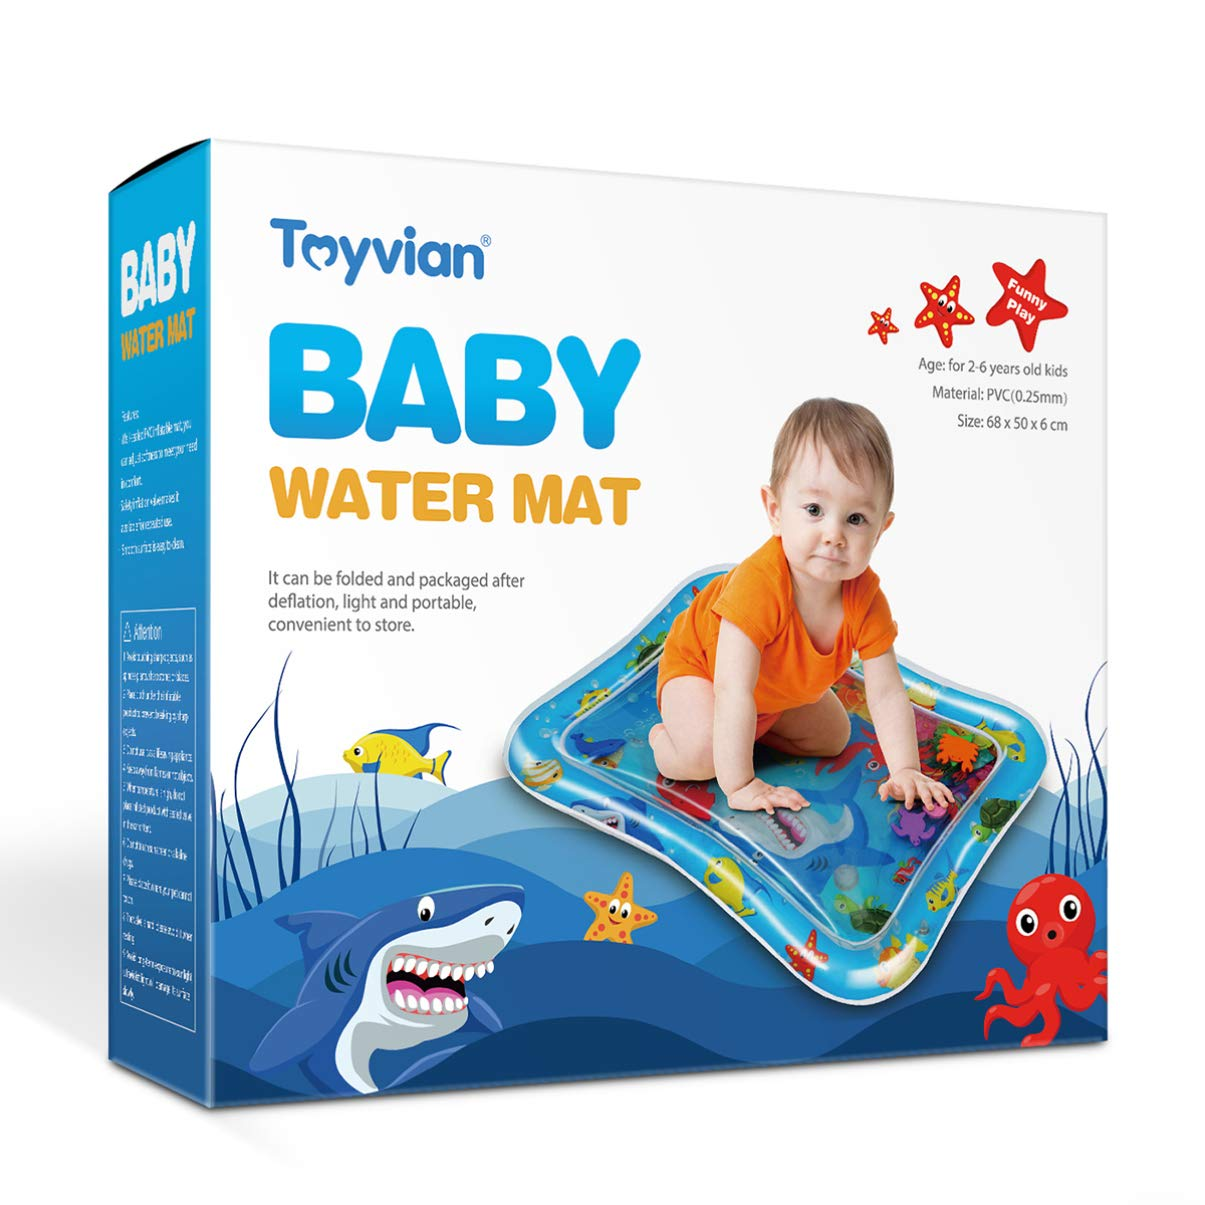 Inflatable Baby Fun Activity Play Center for Boy /& Girl Growth Brain Development Baby Toys for 6-12 Months 27x20 Toyvian Tummy Time Baby Water Mat